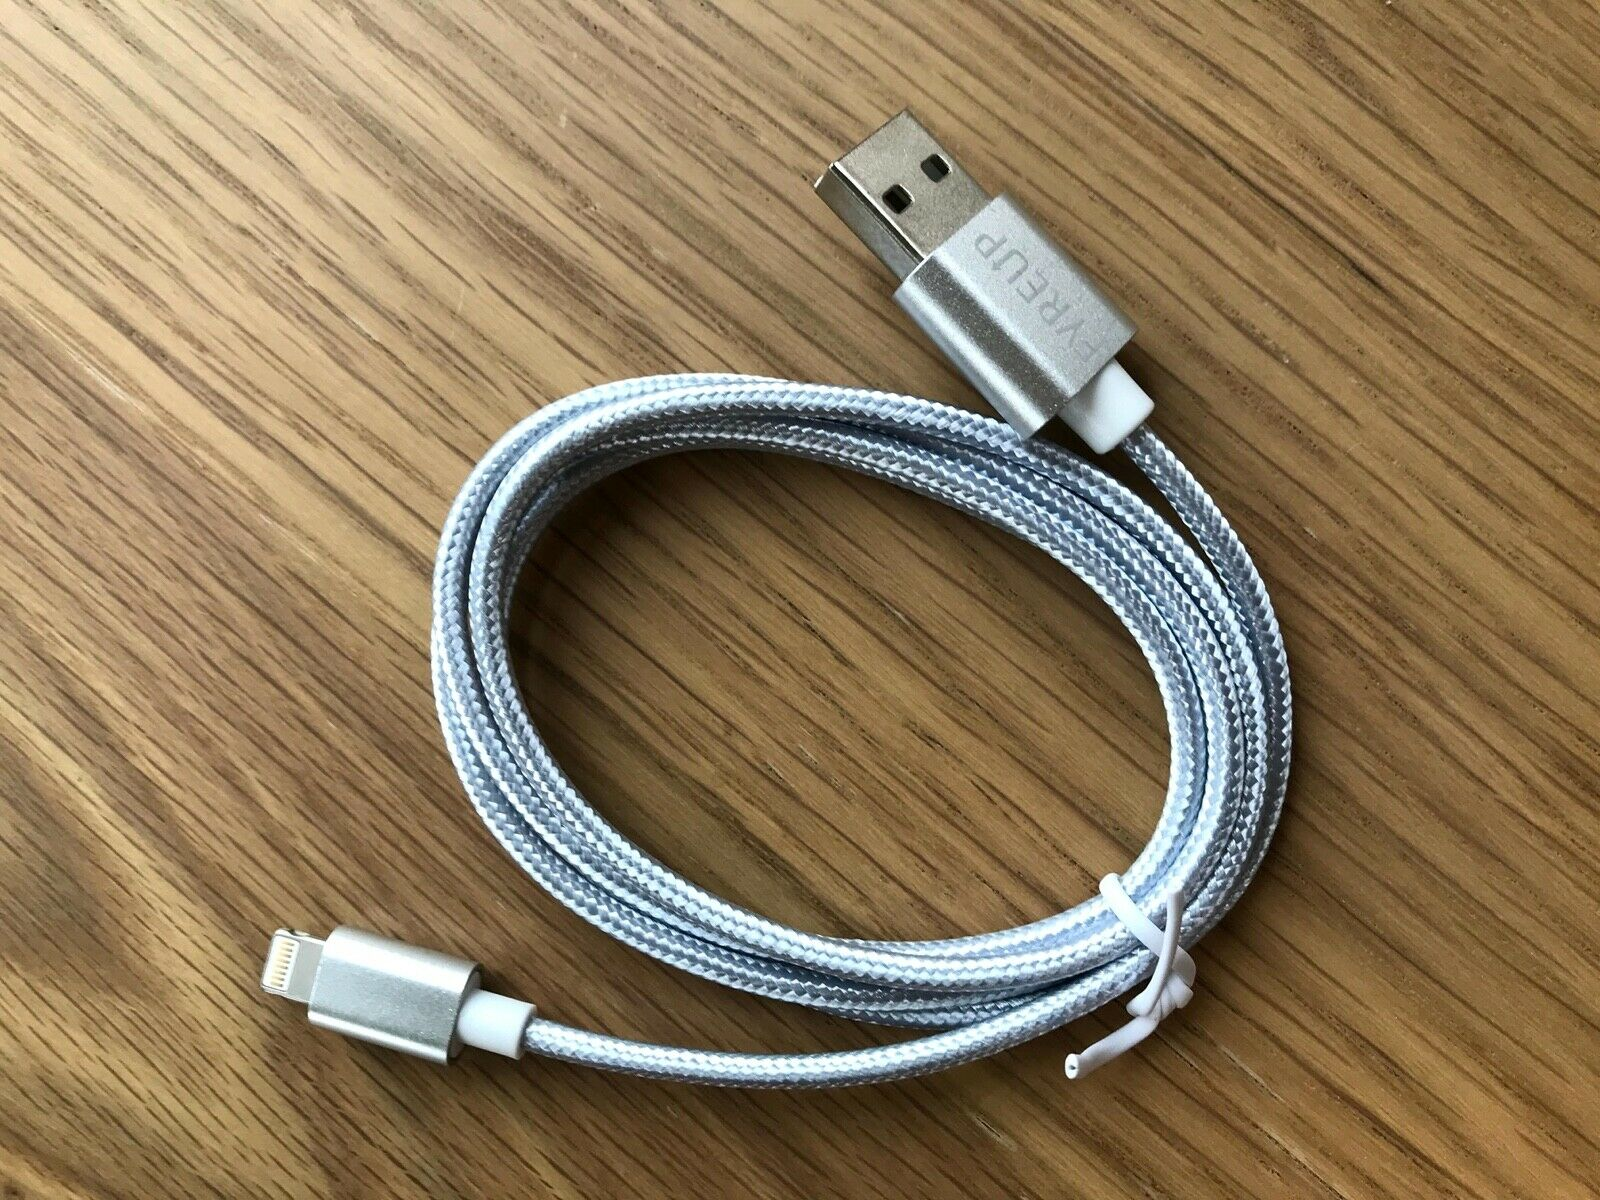 UNBREAKcable UBBT021 1m iPhone Double Nylon Braided Charger Cable Silver Grey